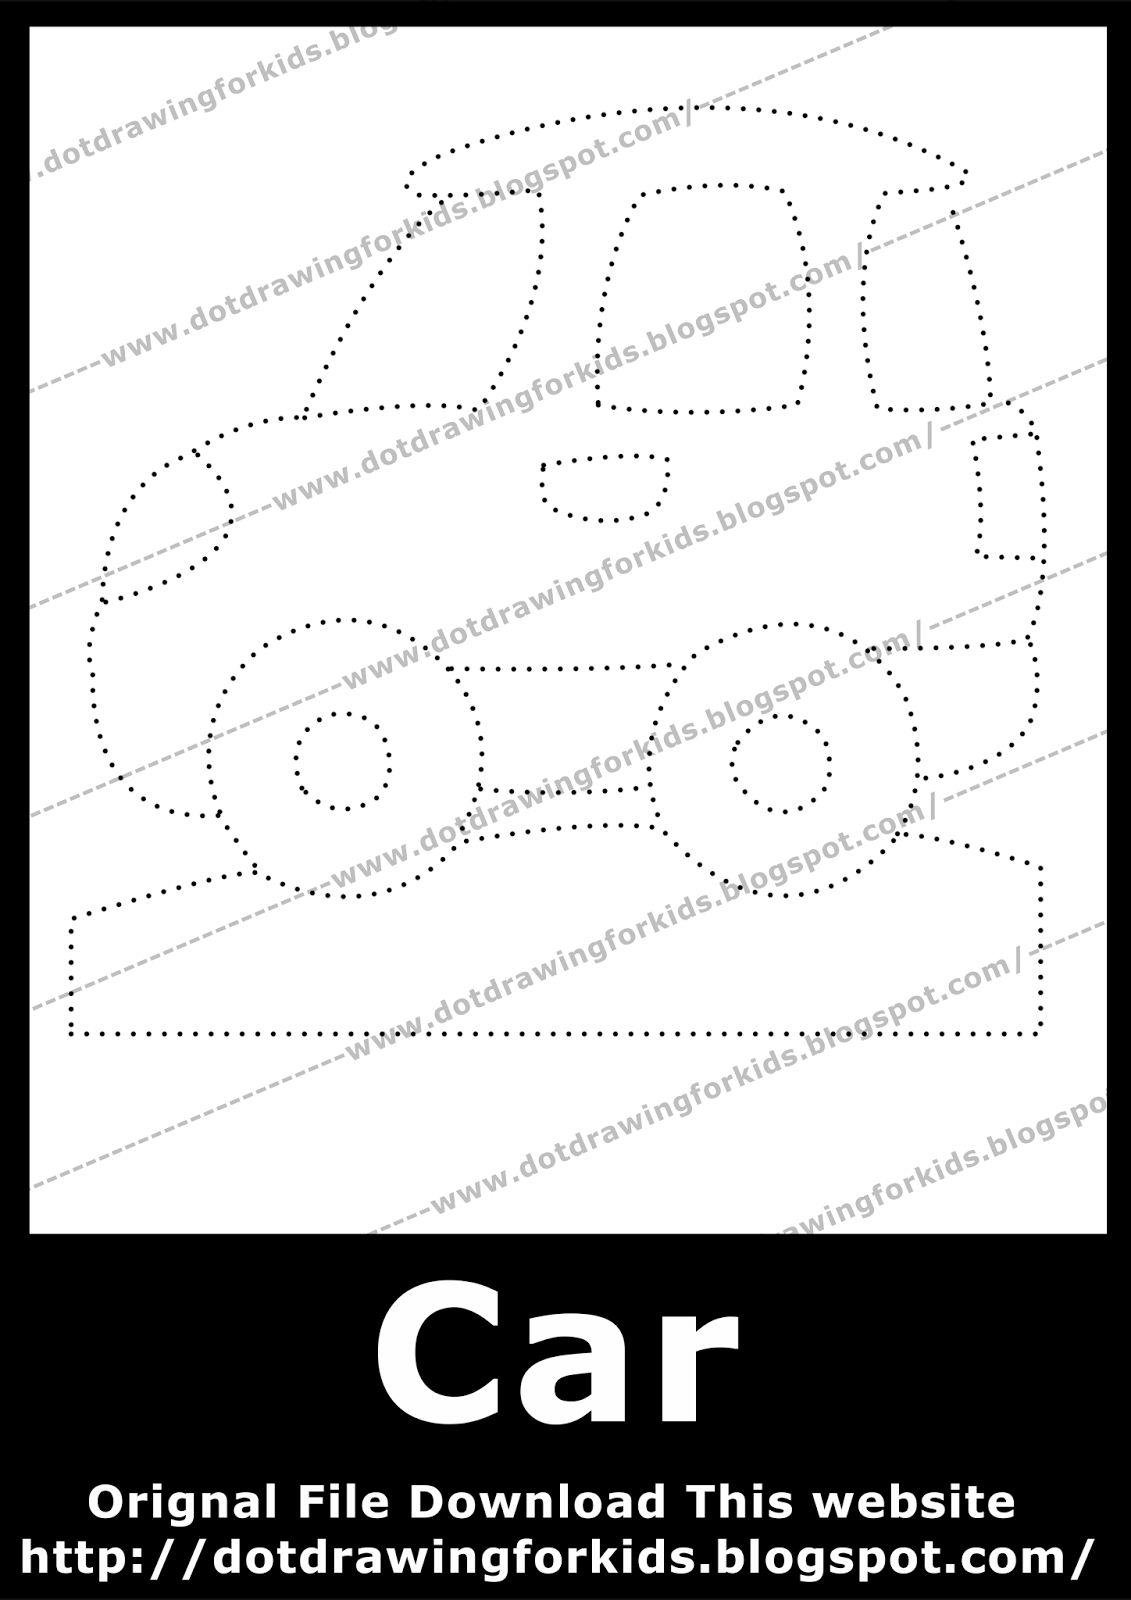 car dot drawing for kids dot to dot drawings free dotted drawing images [ 1131 x 1600 Pixel ]